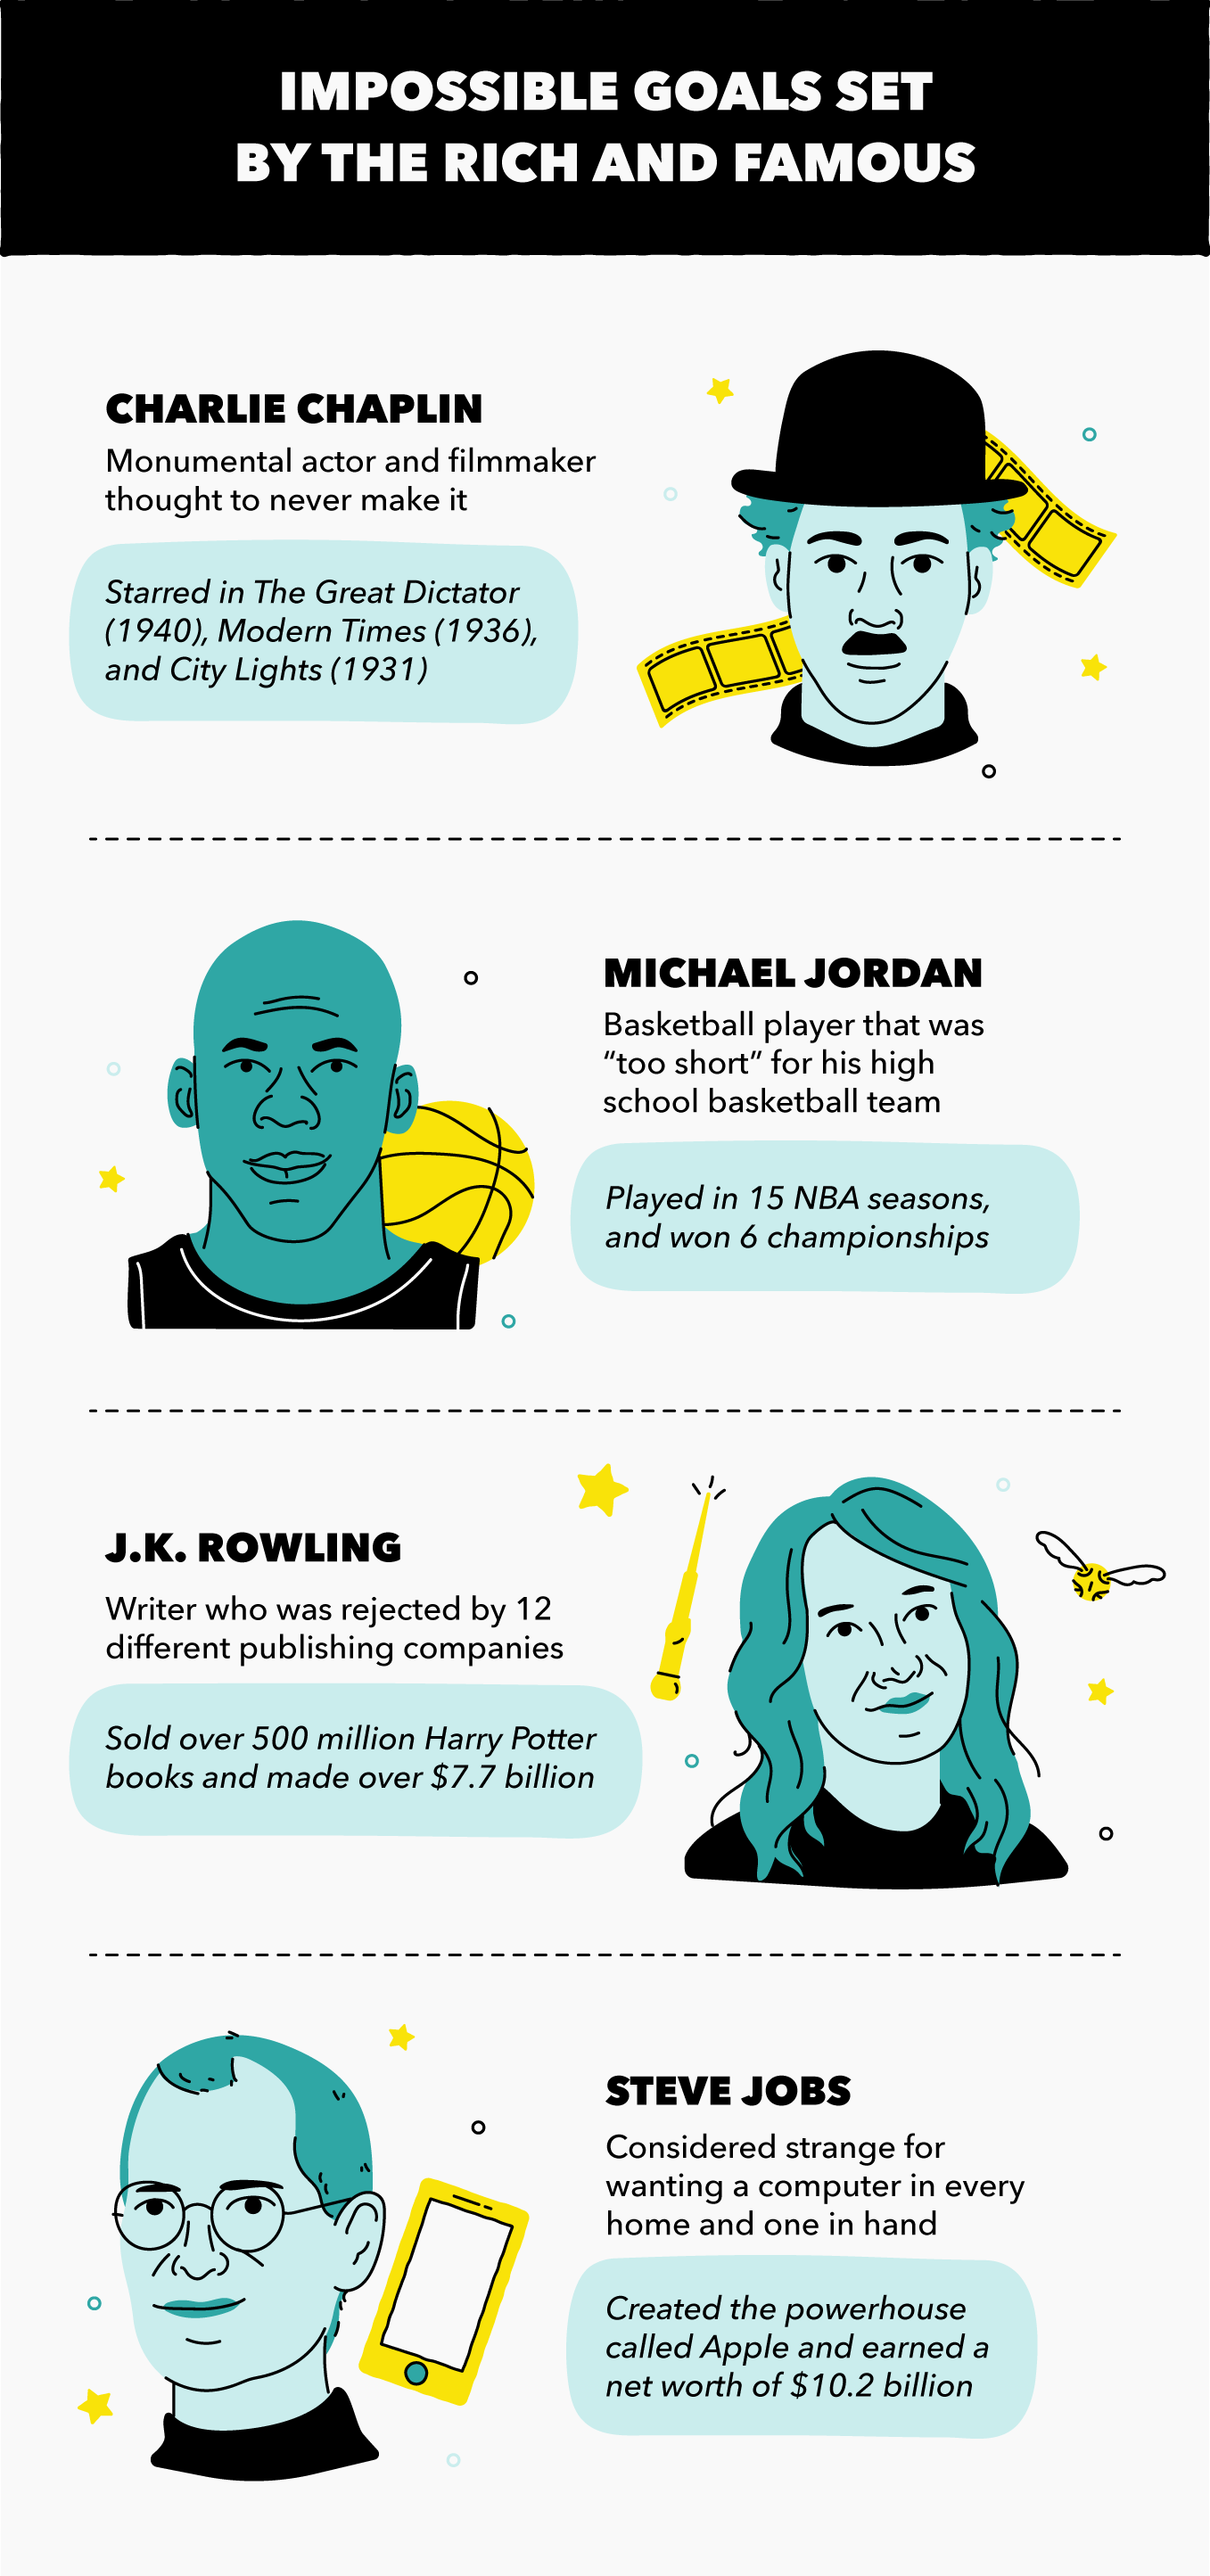 Impossible Goals Set by the Rich and Famous